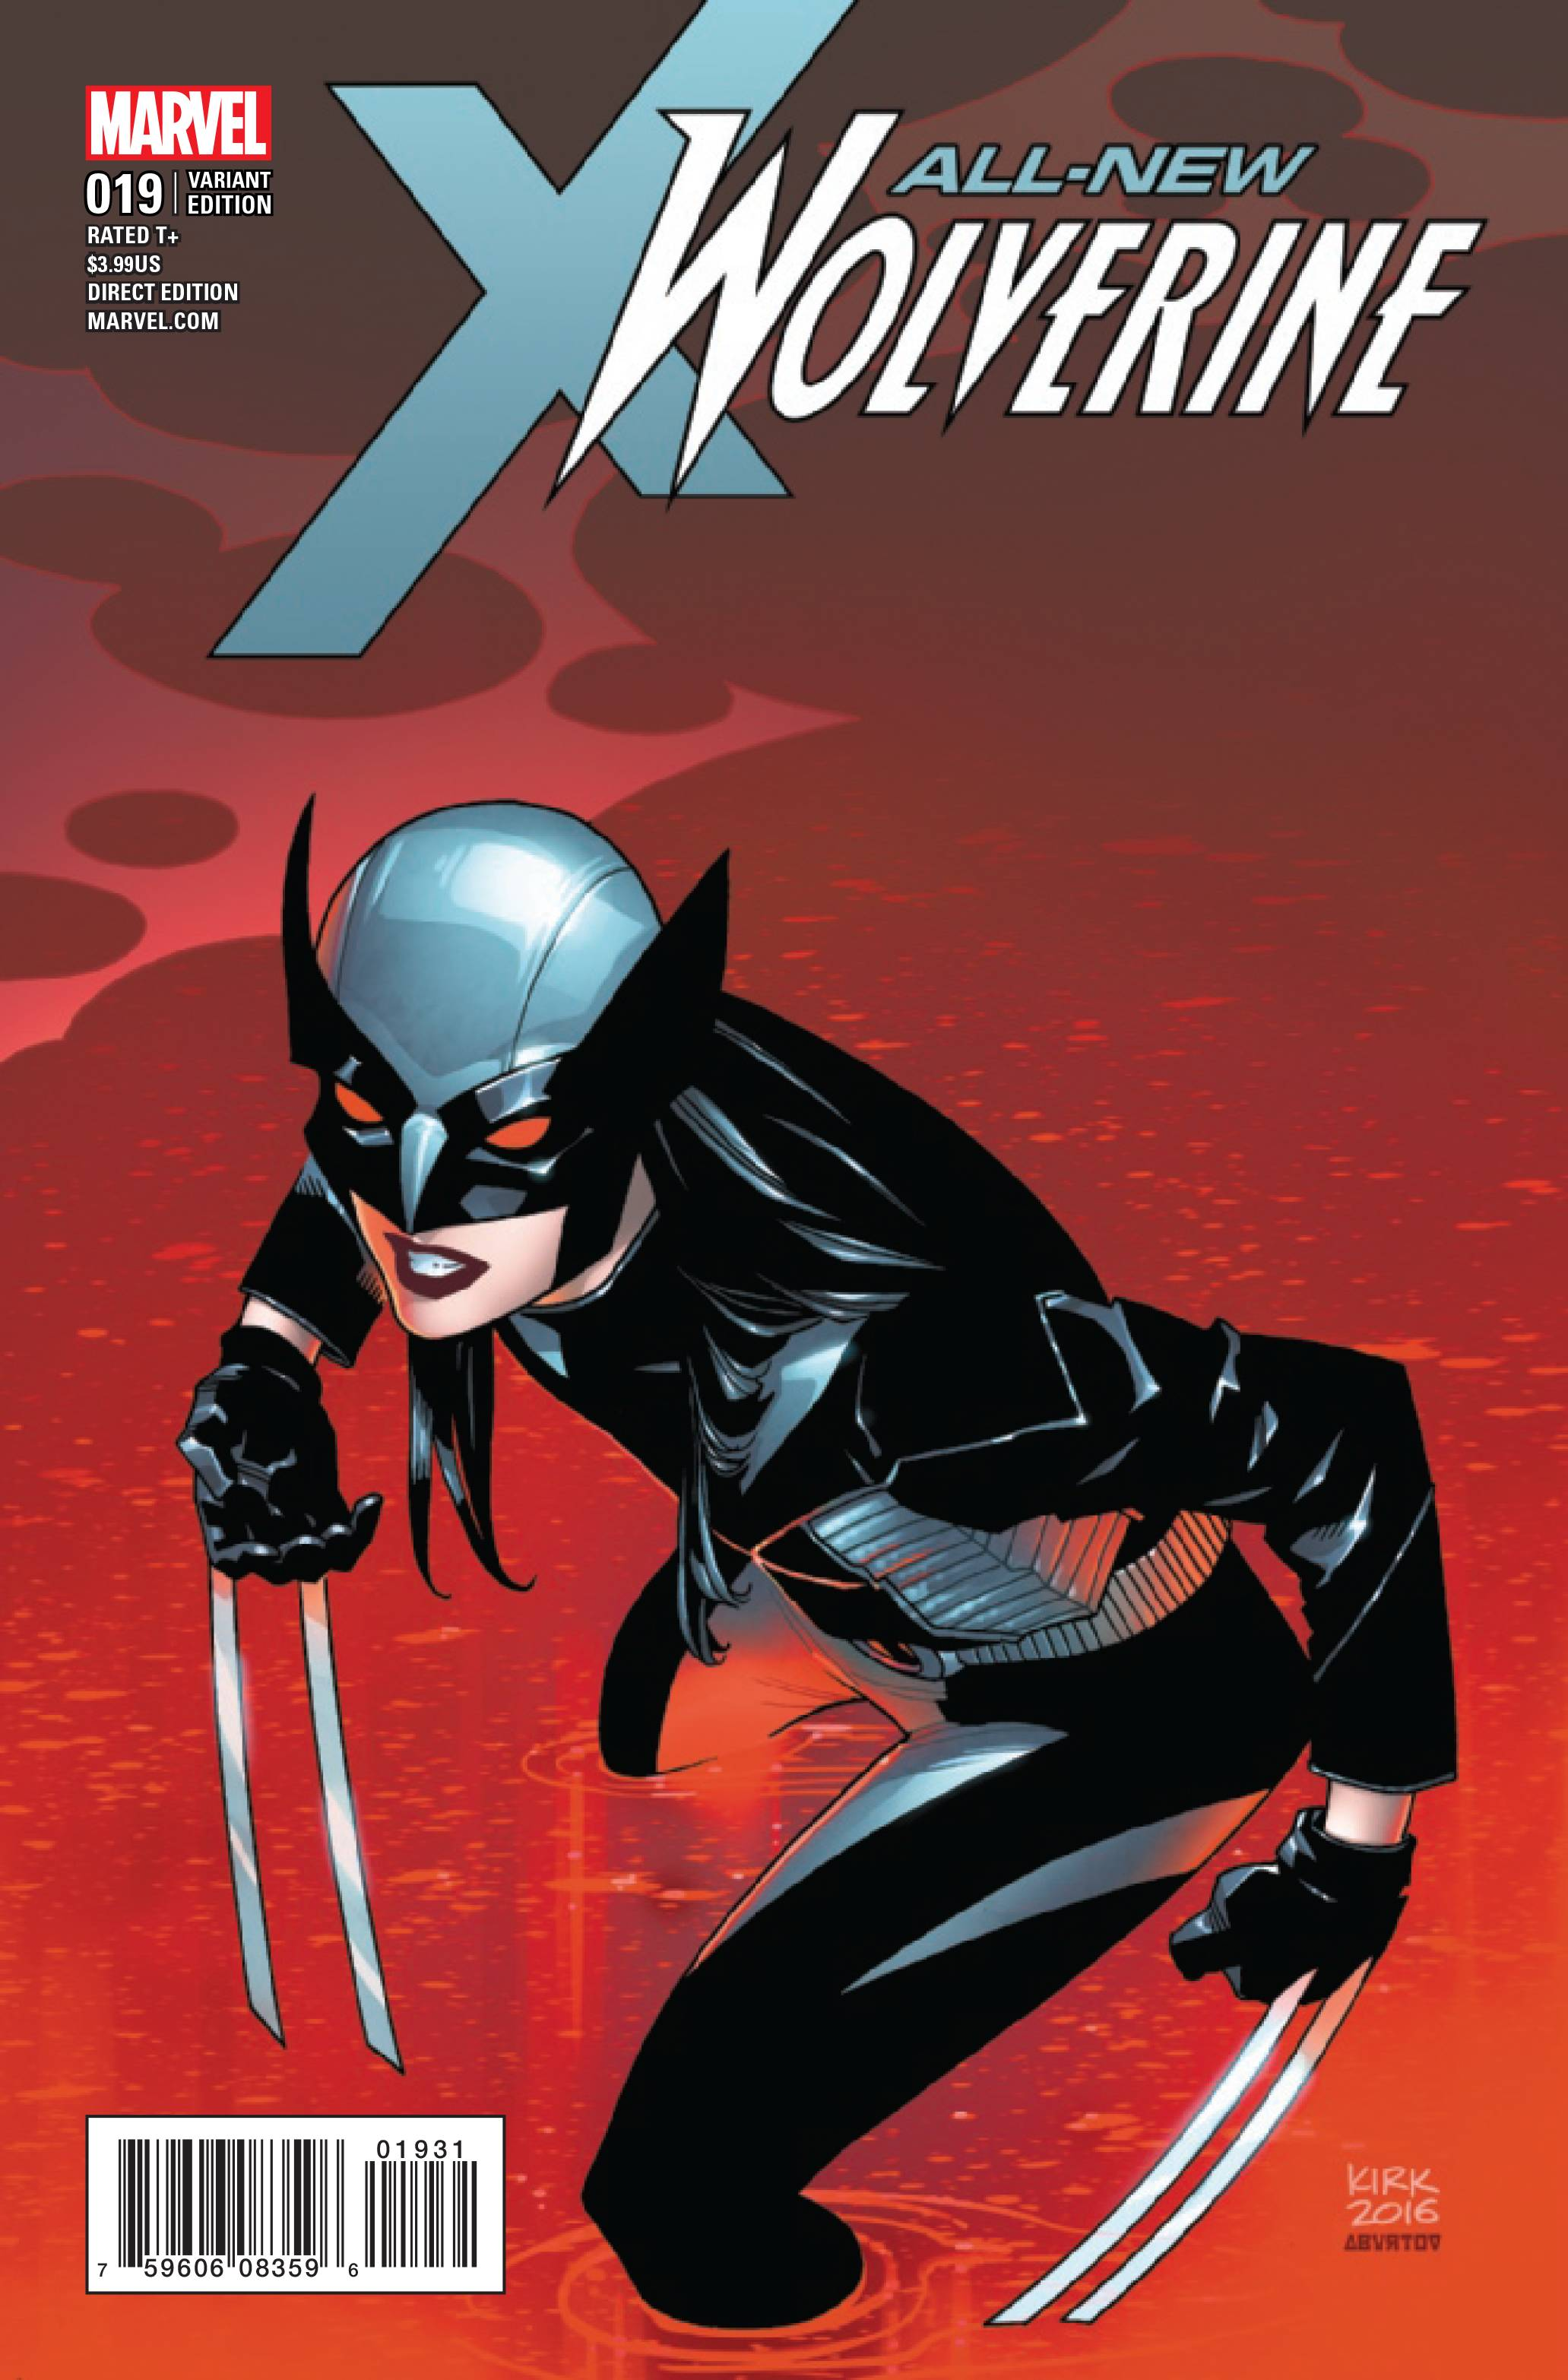 04/05/2017  ALL NEW WOLVERINE #19 KIRK 1:25 VARIANT